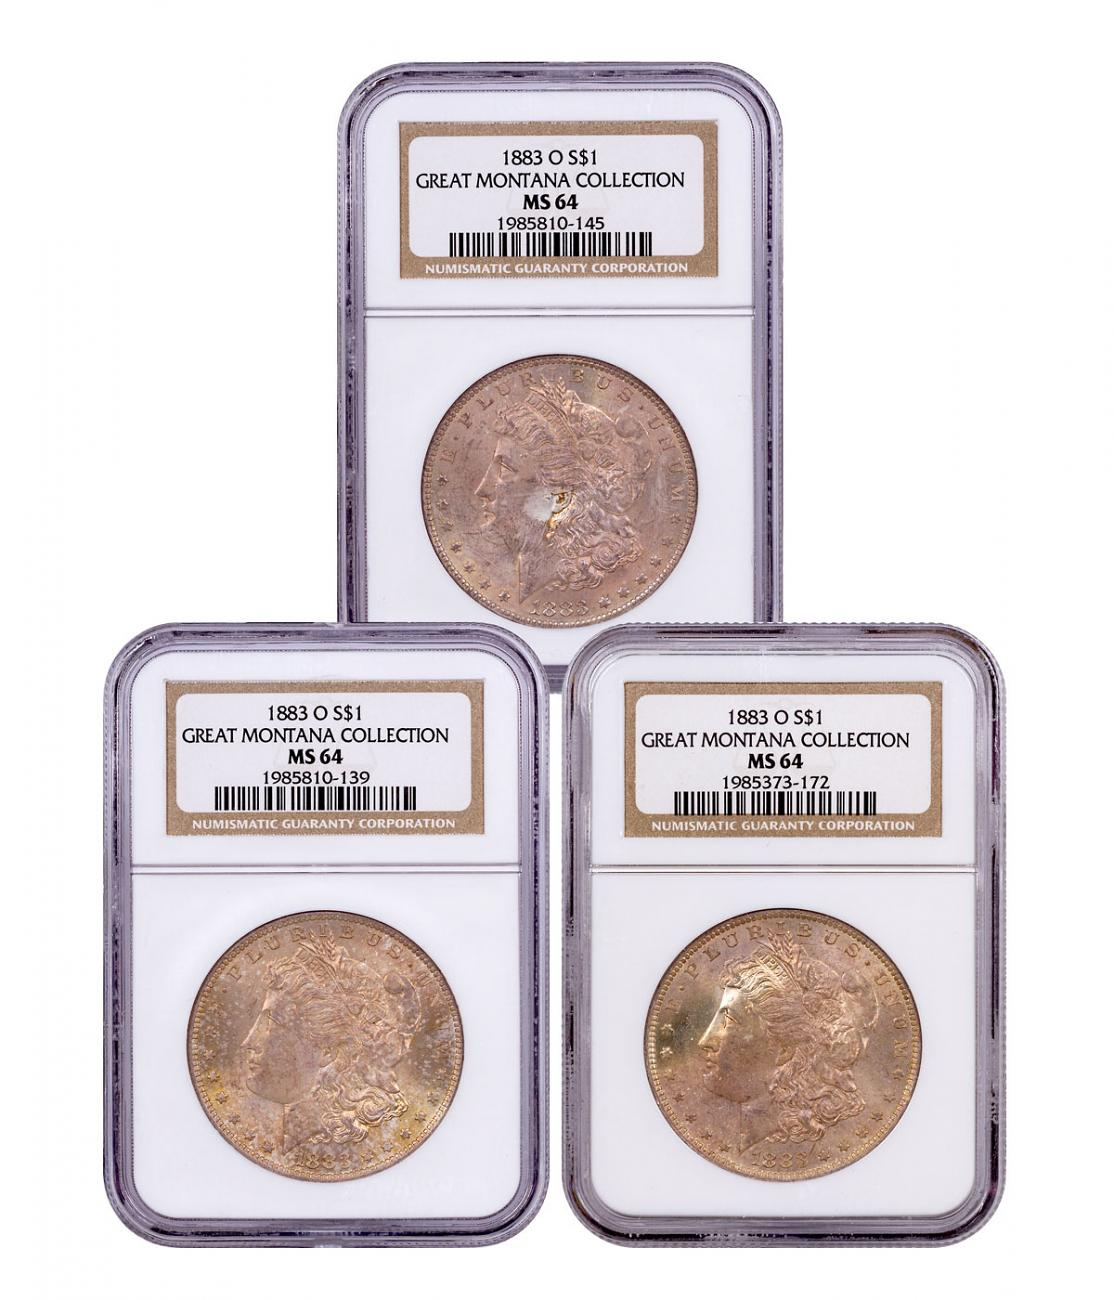 3-Coin Set - 1883-O Morgan Silver Dollar From the Great Montana Collection NGC MS64 Toned CPCR 0145